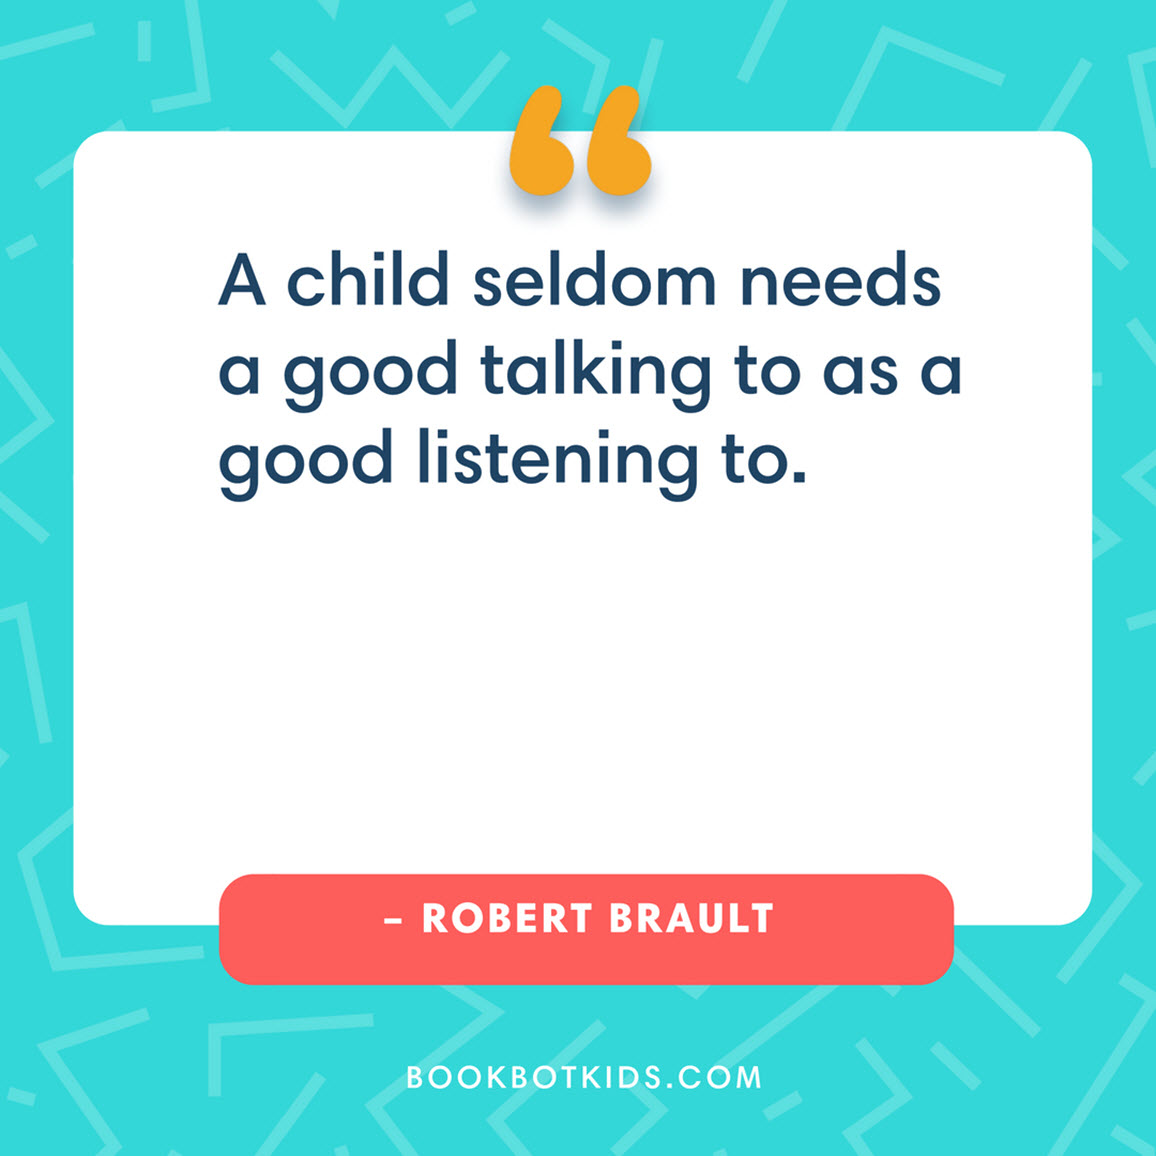 A child seldom needs a good talking to as a good listening to. – Robert Brault